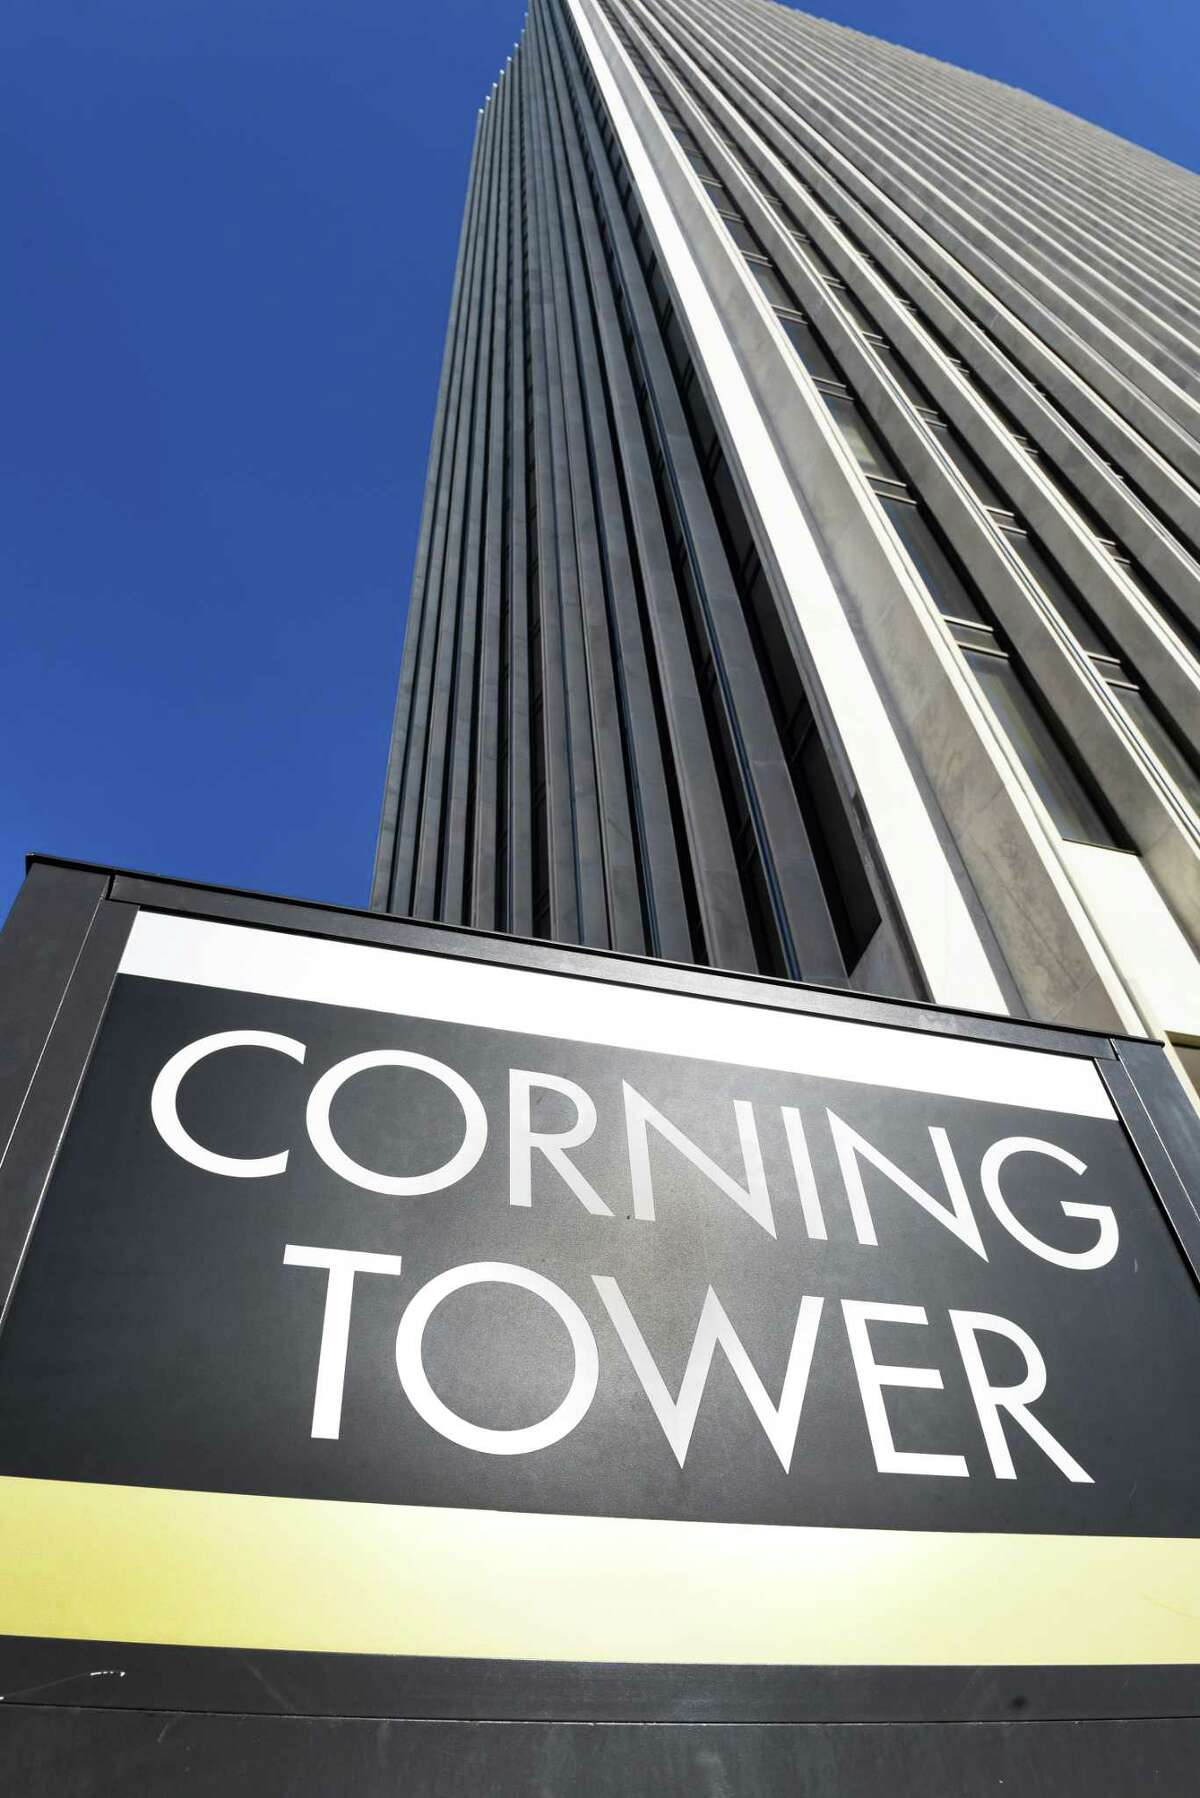 The Corning Tower on the Empire State Plaza Friday Feb. 17, 2017 in Albany, NY. (John Carl D'Annibale / Times Union)